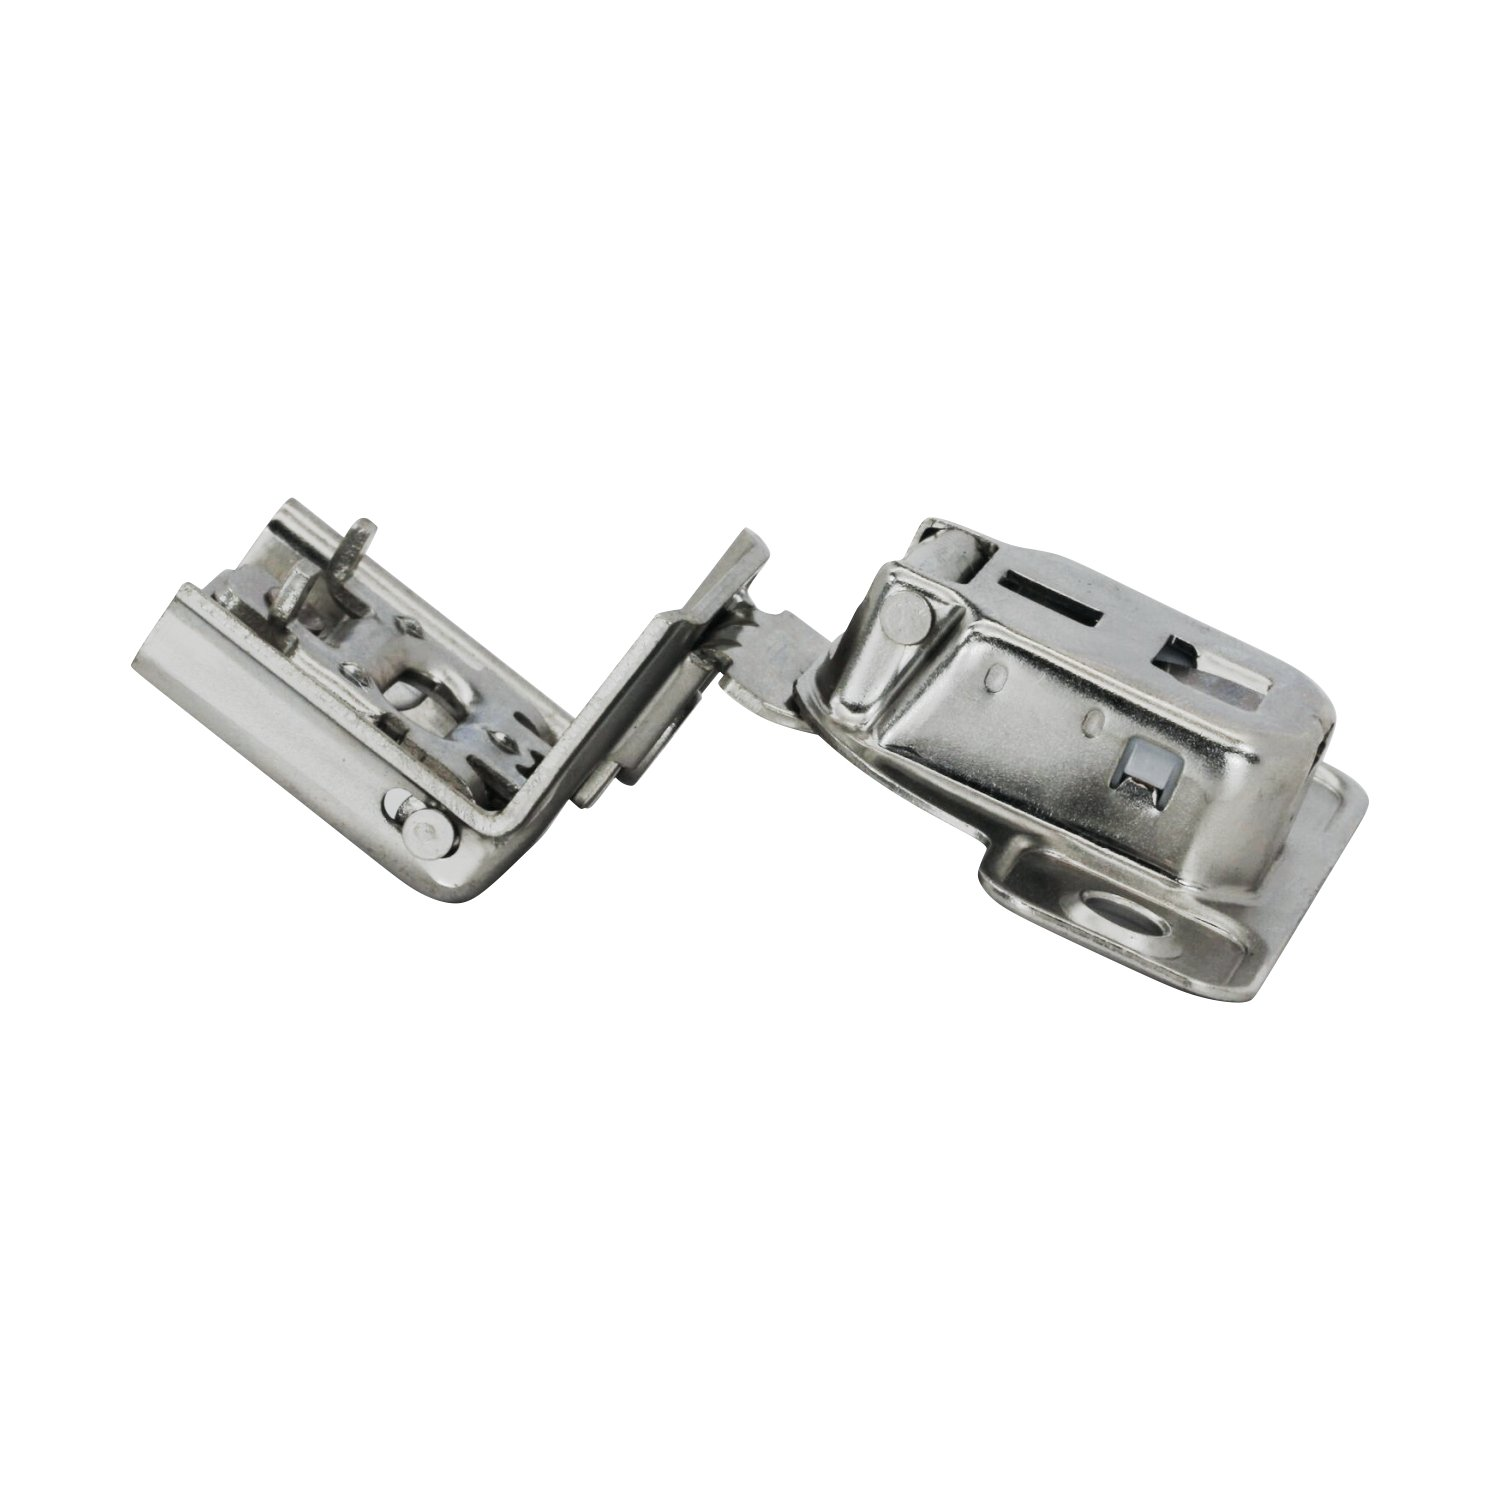 25 Pack Salice 106 Degree Silentia 1-3/8'' Overlay Screw On Soft Close Cabinet Hinge with 2 Cam Adjustment CUP3CD9 by Rok (Image #5)